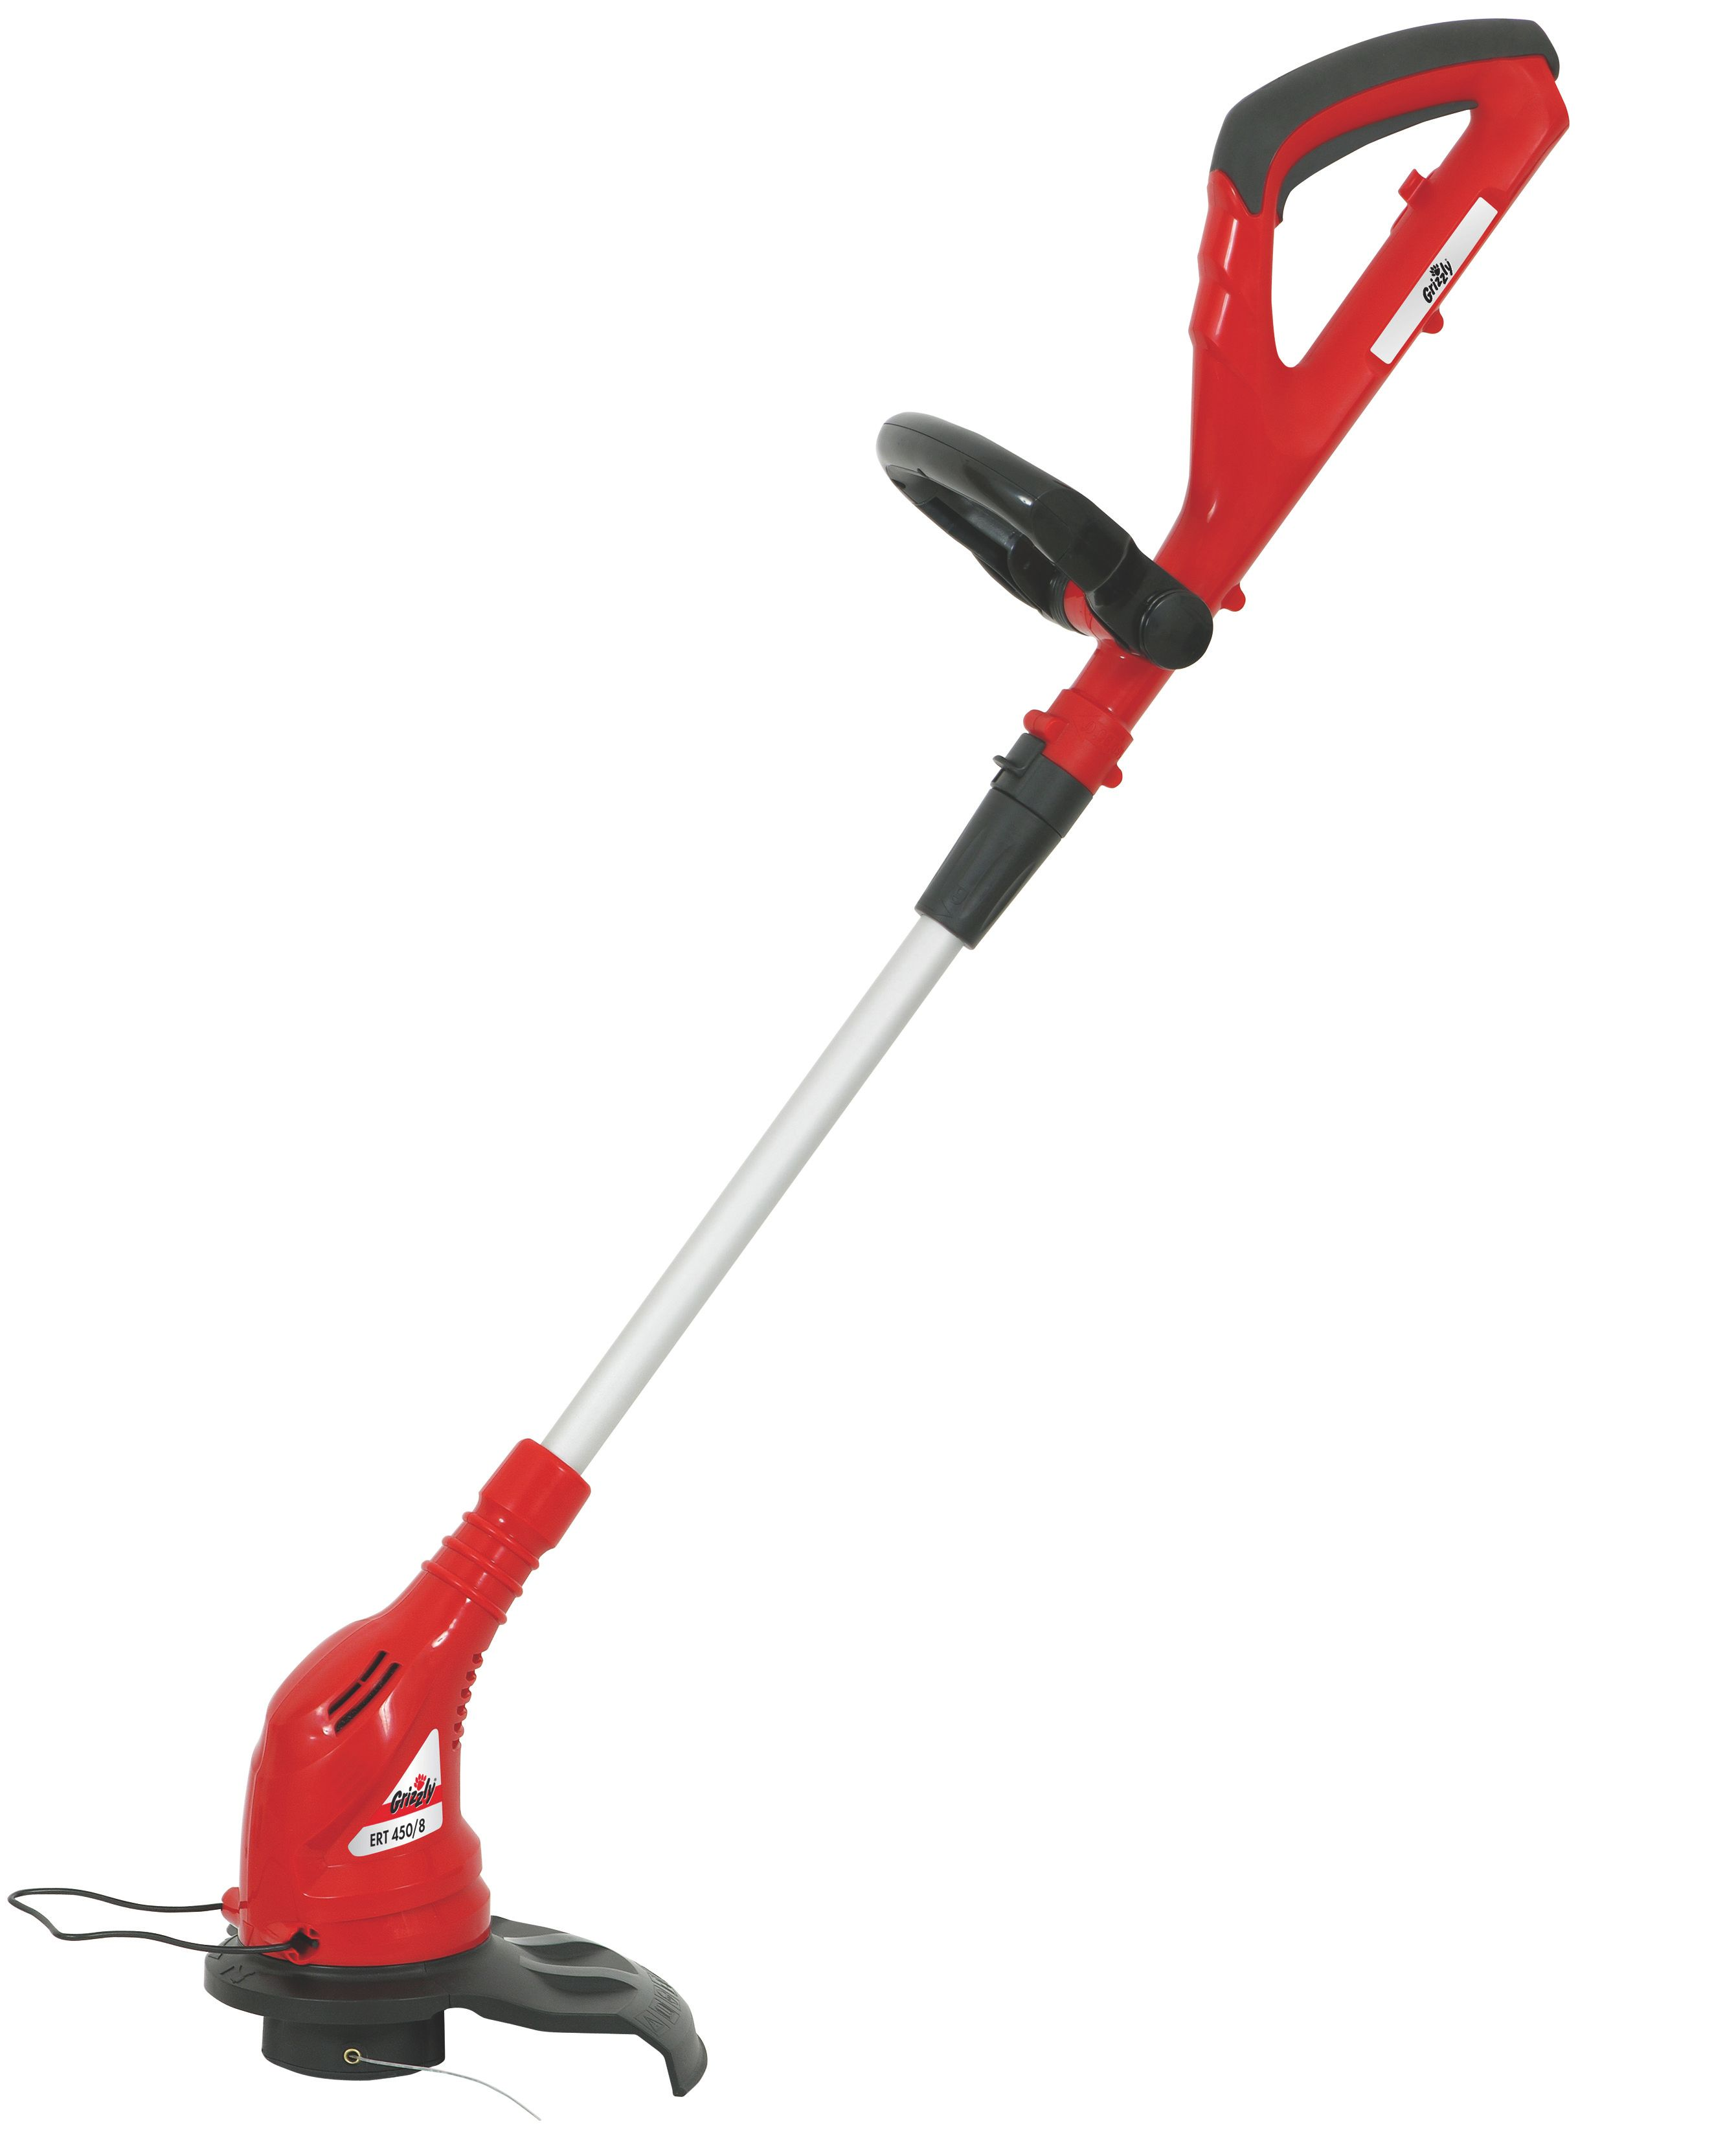 Image of Grizzly Grizzly 450w adjustable lawn trimmer